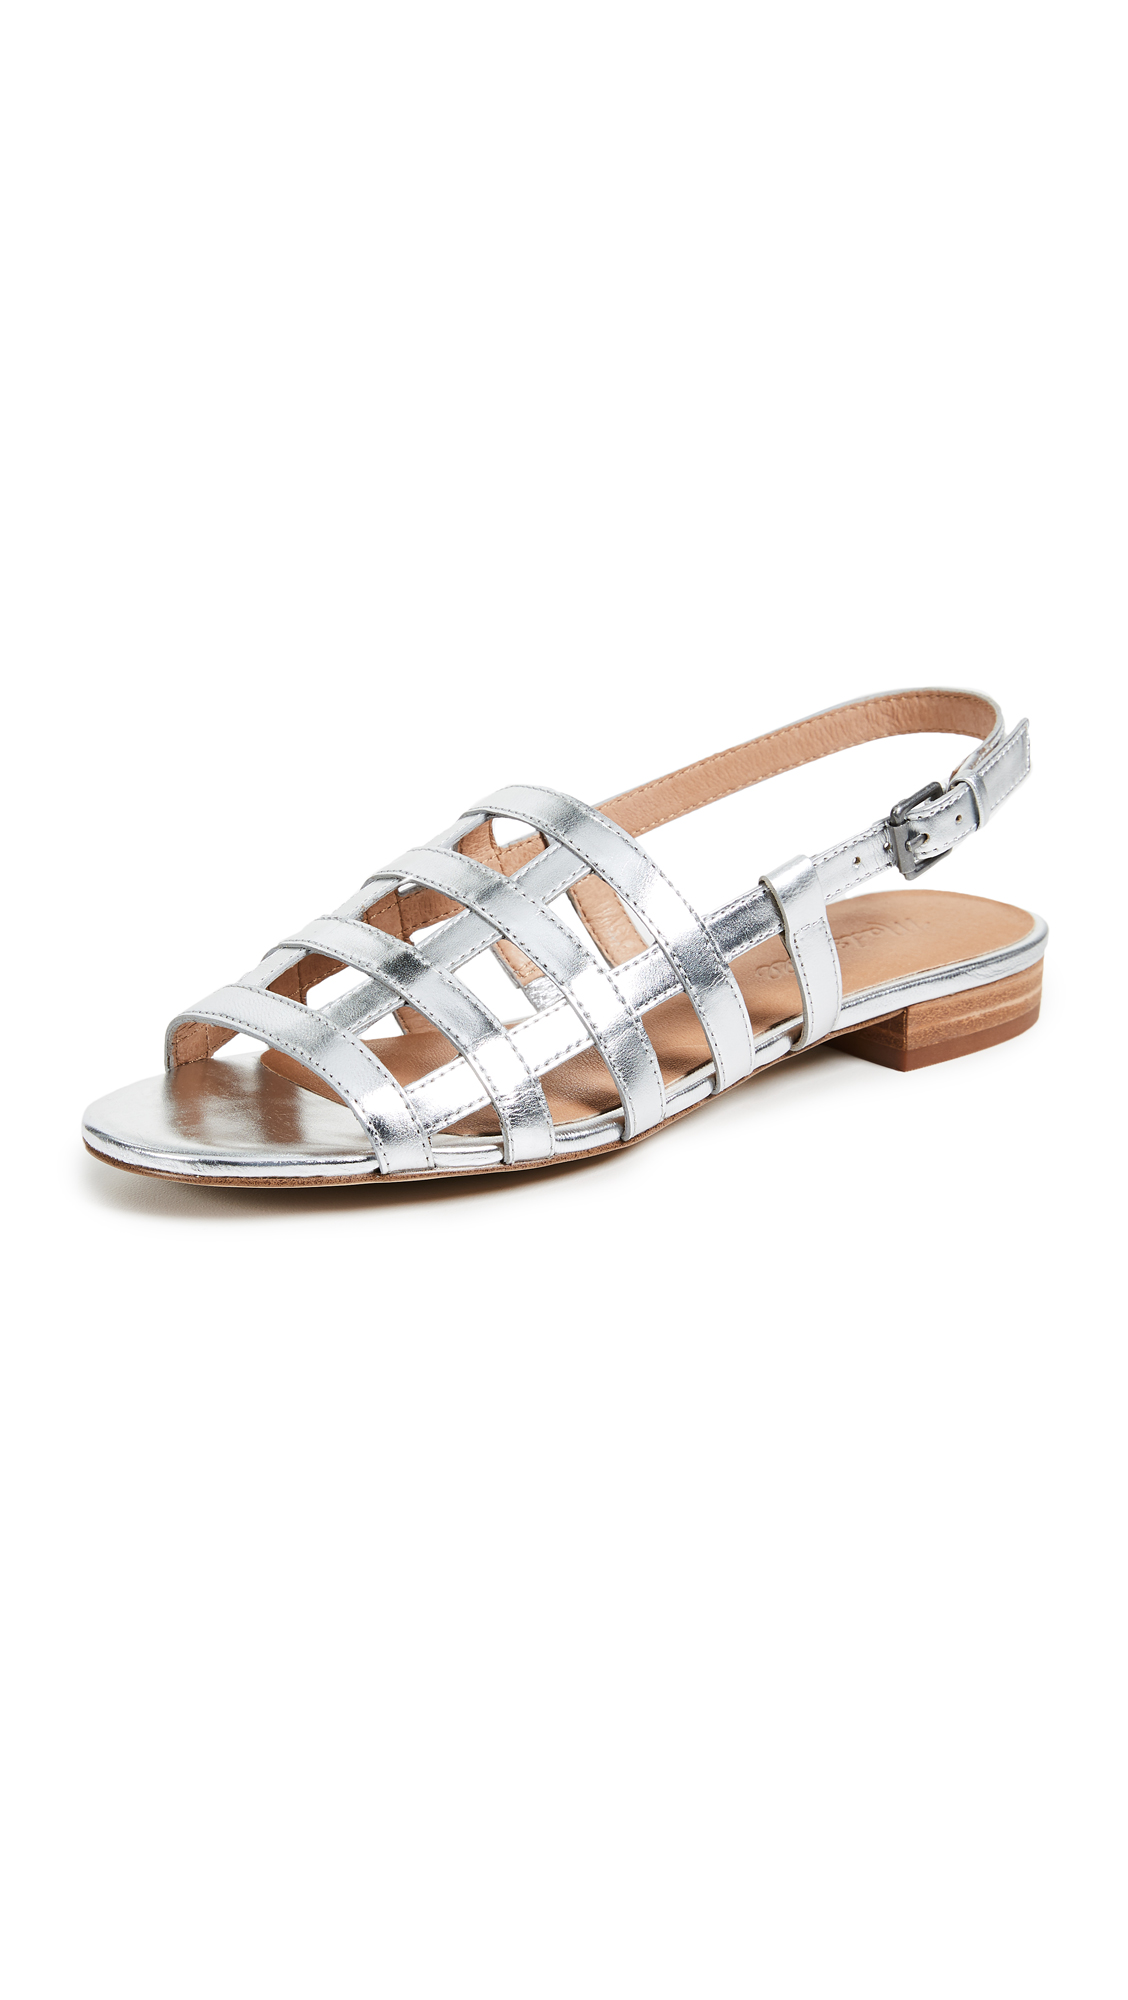 Madewell Holly Cage Sandals - Silver Metallic